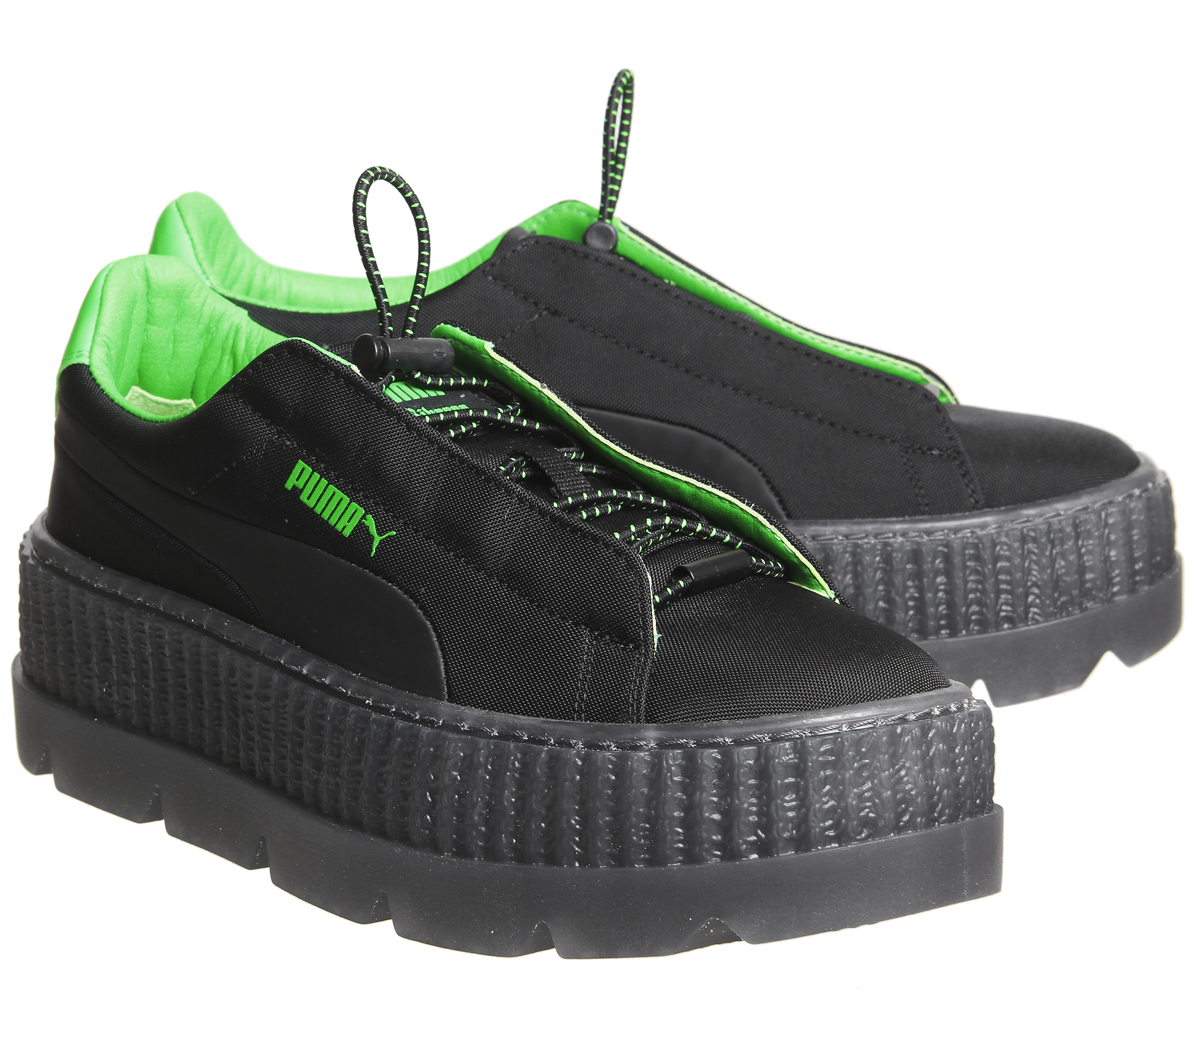 298a703d3a2 Womens Puma Fenty Cleated Creepers Surf Black Green Trainers Shoes ...